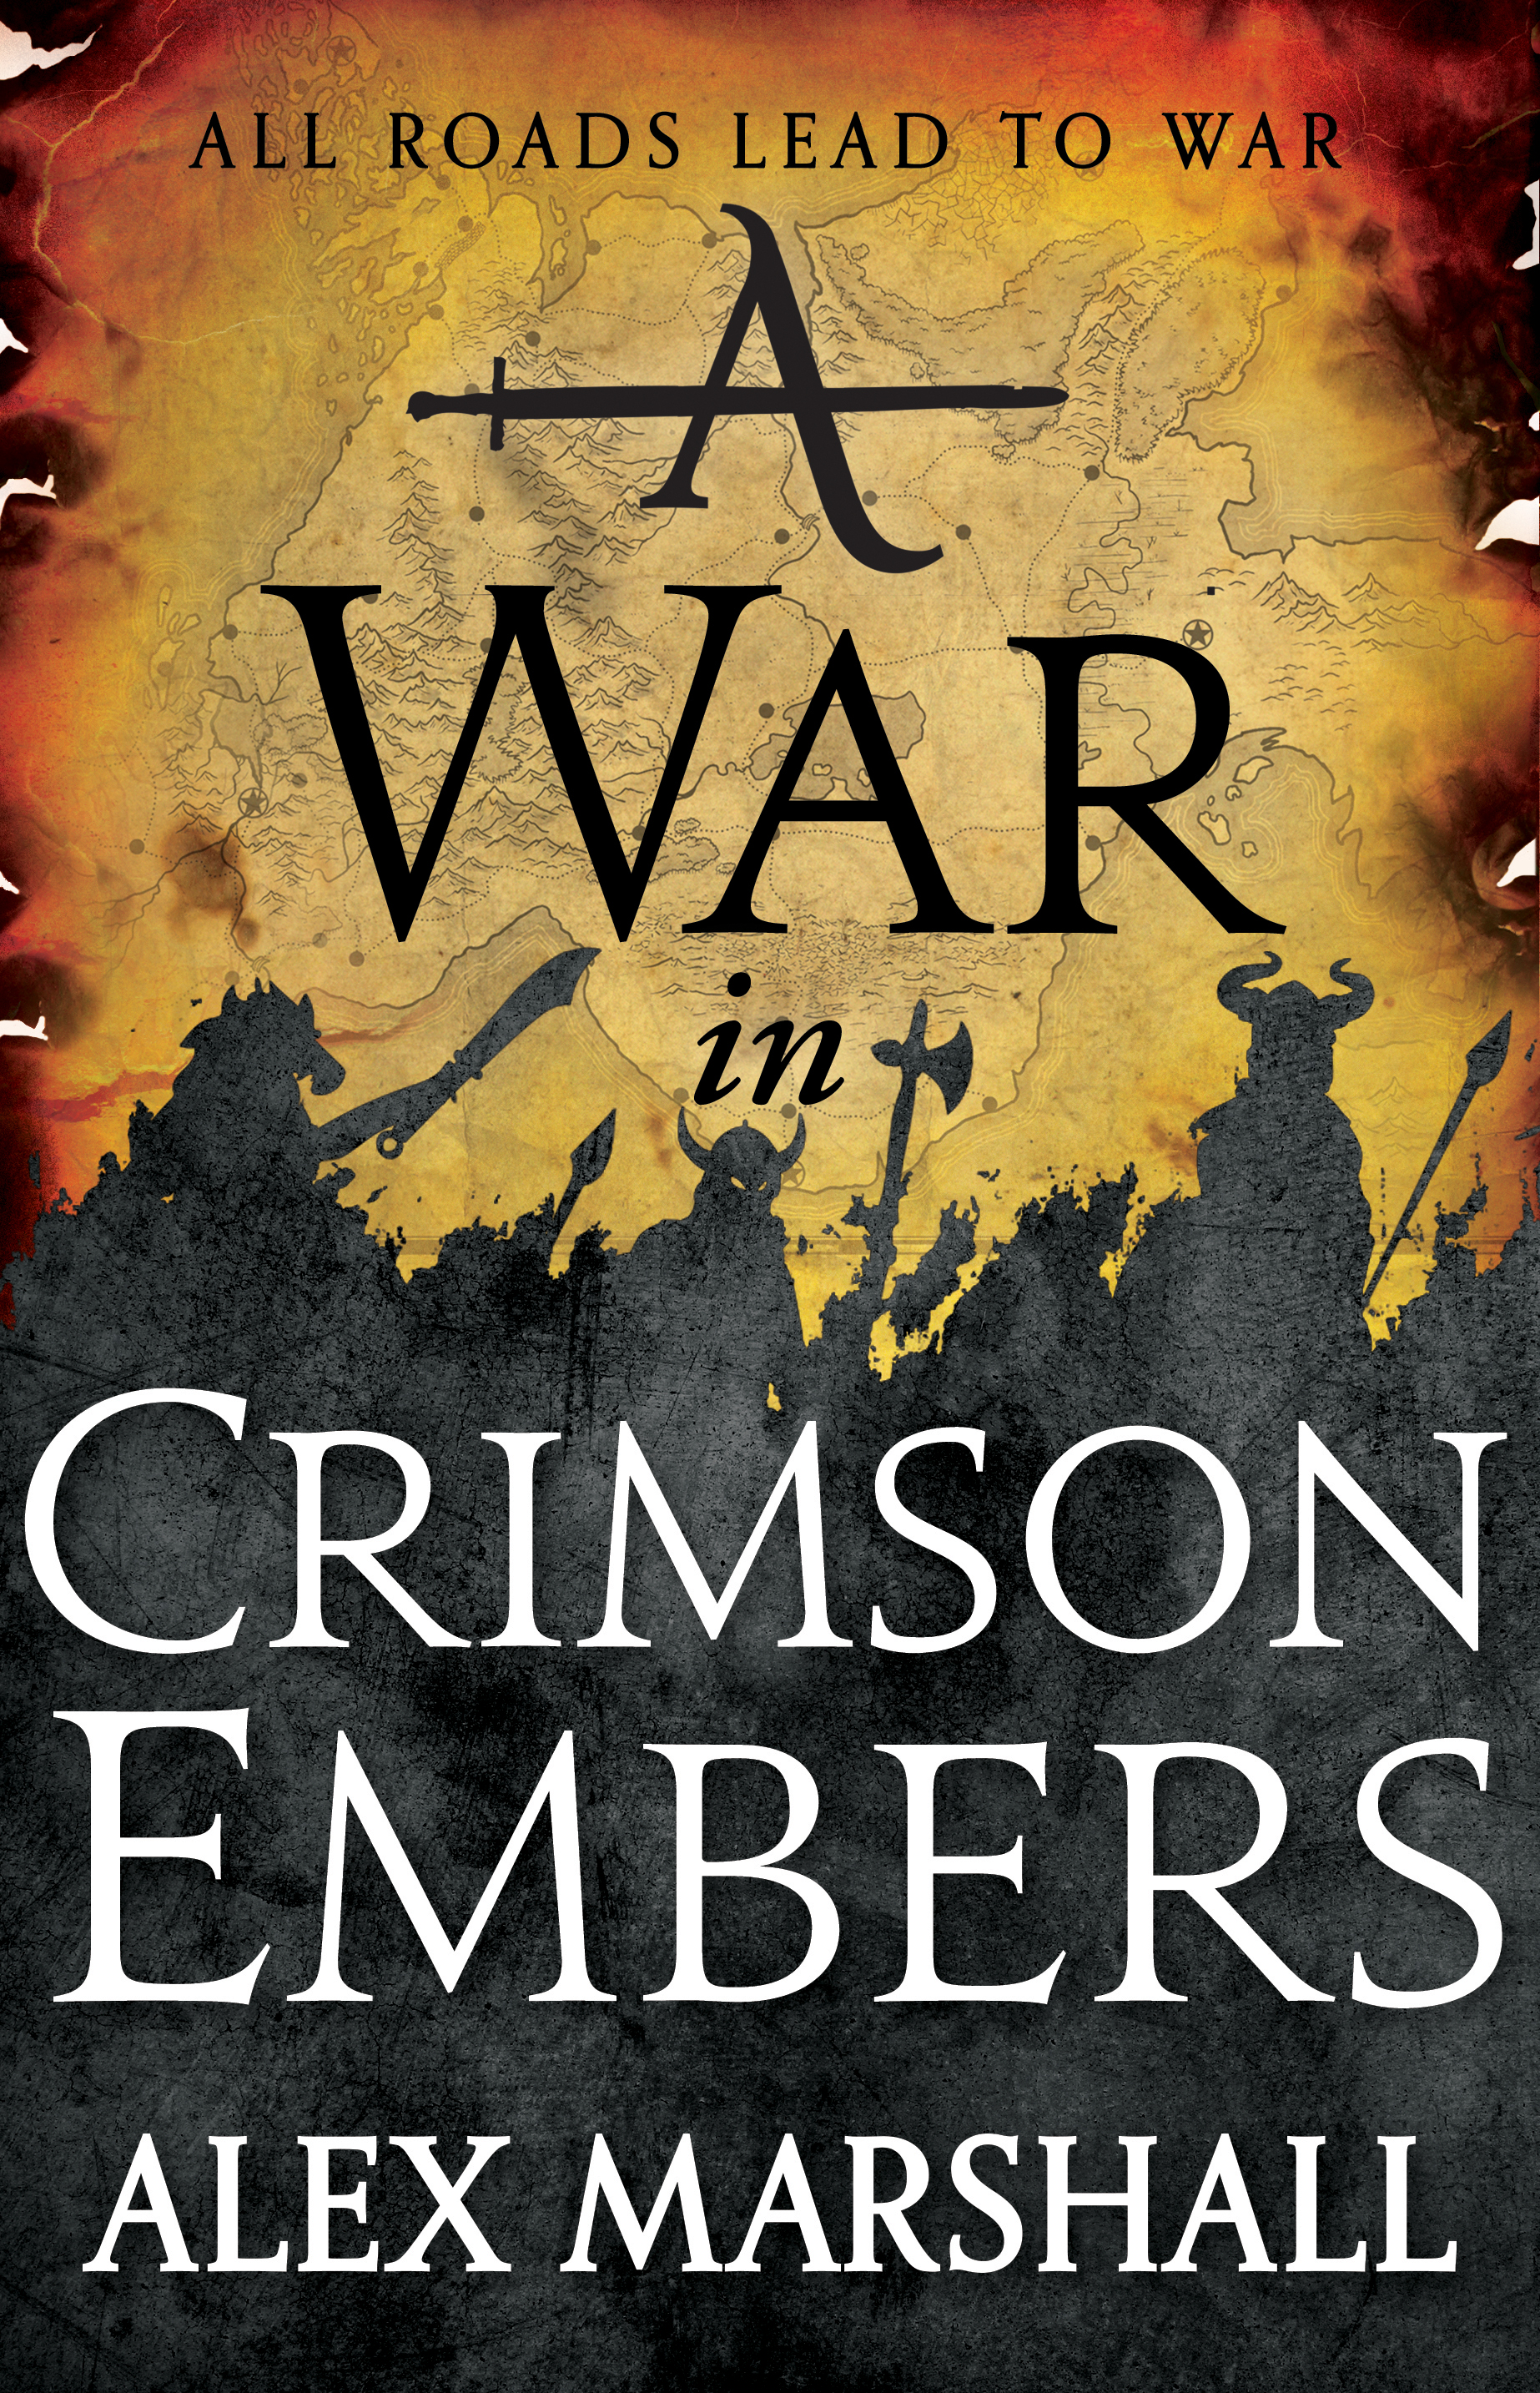 Marshall, Alex - A War in Crimson Embers - Cover.jpg